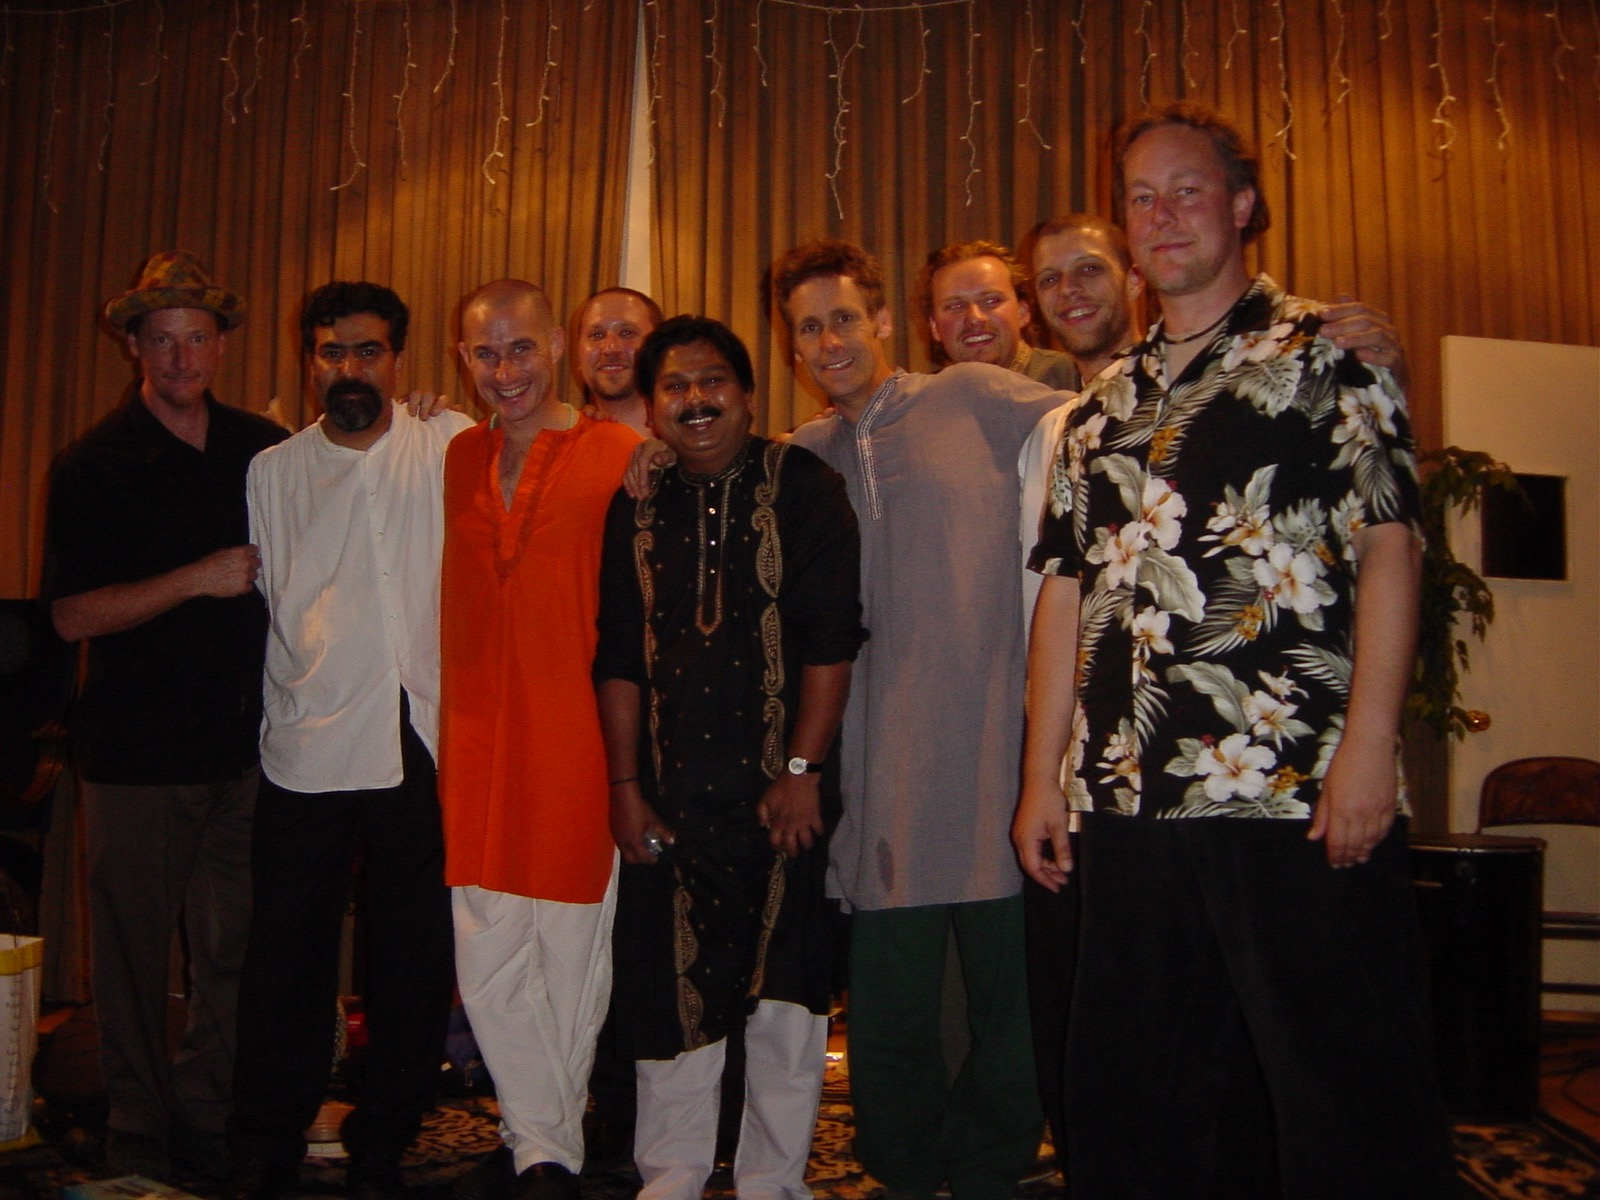 Hands On'Semble and Tabla Rasa.  Philosophical Research Society, Los Angeles CA. 2004.  (L-R: Brad Dutz, Houman Pourmehdi, Jim Owen, Randy Gloss, Uttam Chakrabarthy, Tim Whitter, Evan Fraser, Andrew Grueschow, Austin Wrinkle).